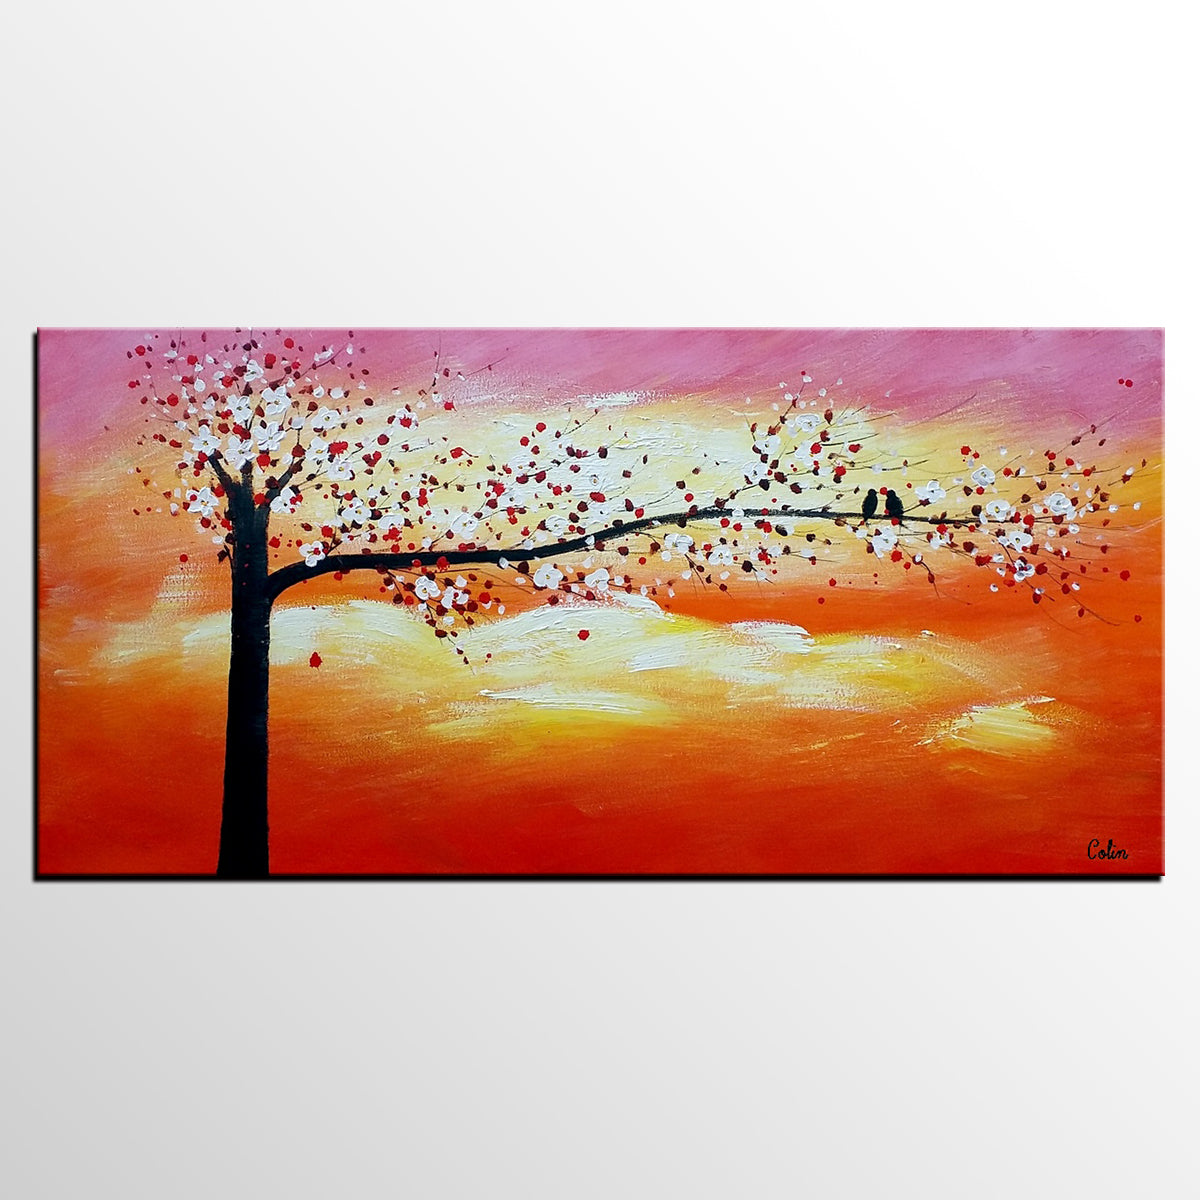 Abstract Art, Love Birds Painting, Wall Painting, Abstract Painting for Sale